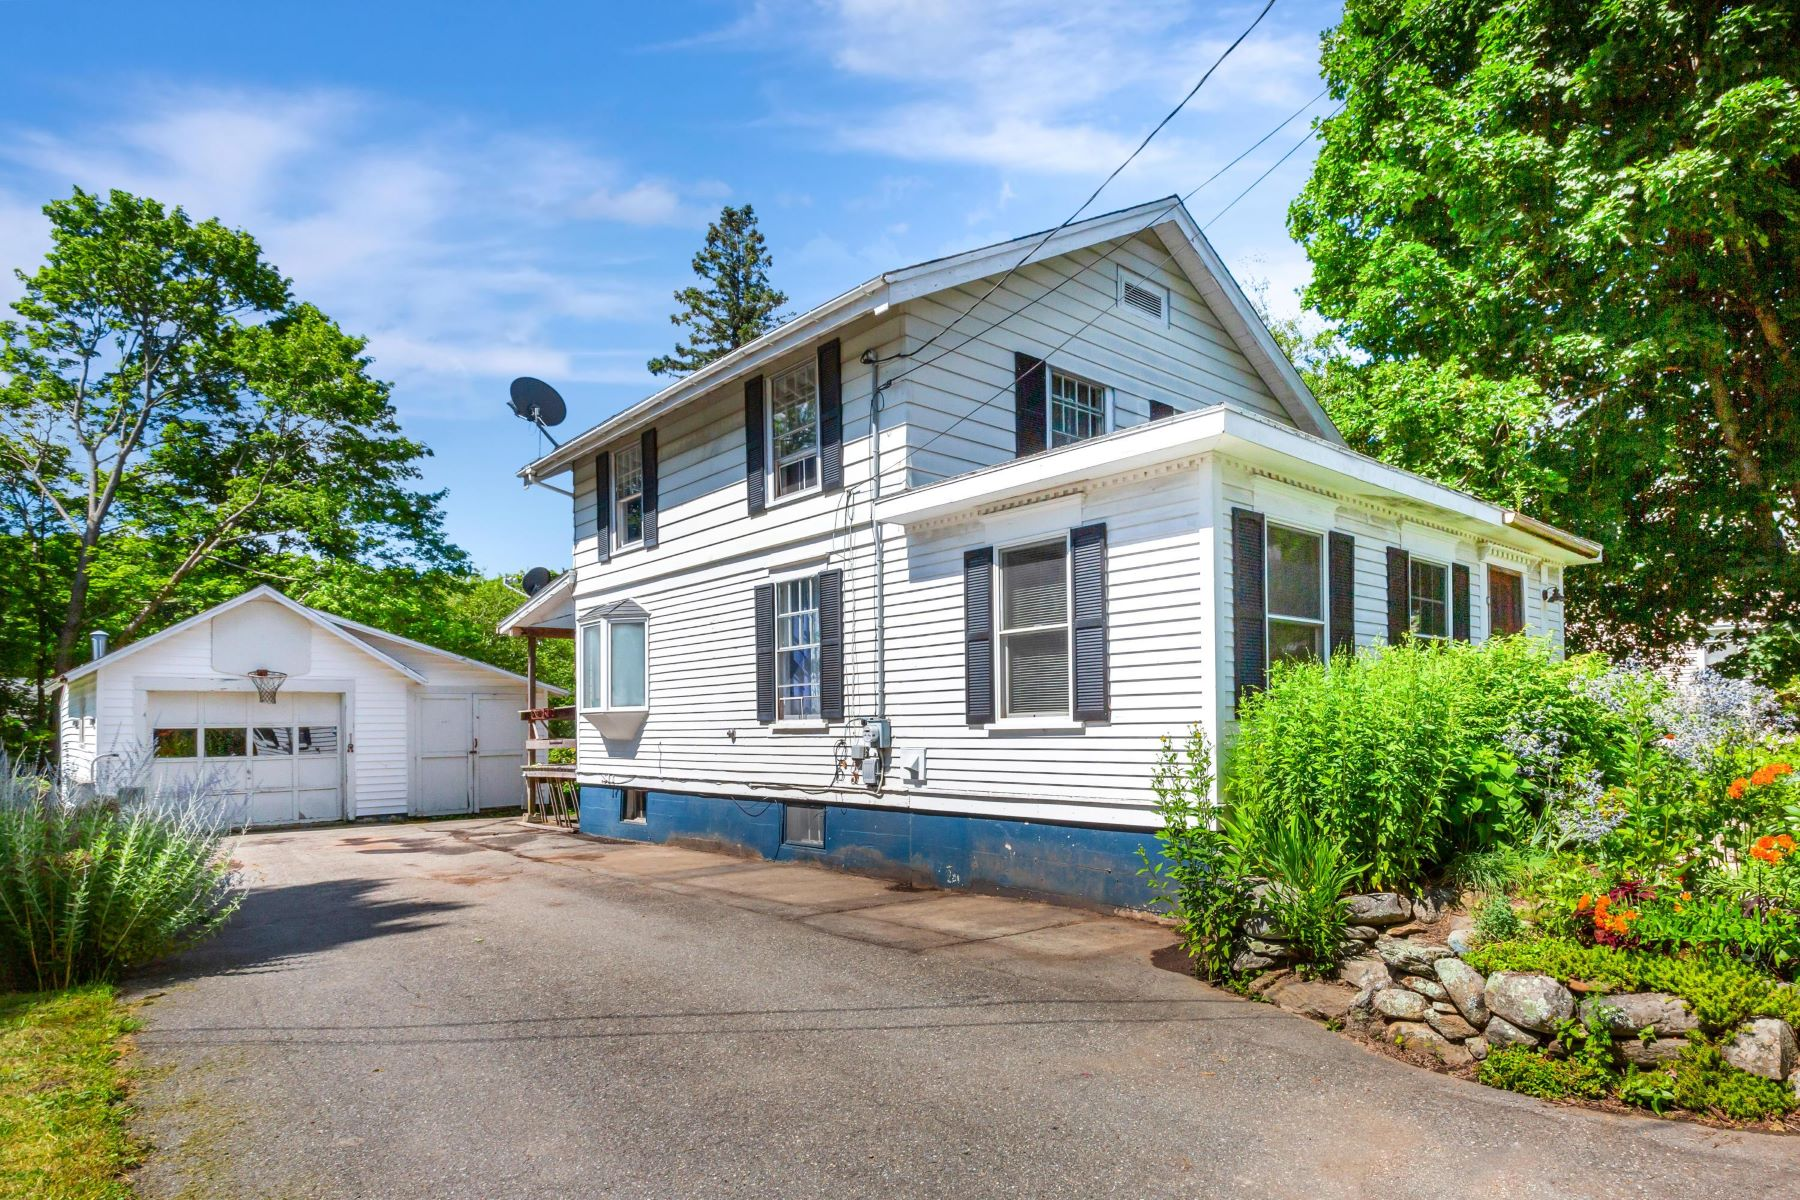 Single Family Homes for Active at 34 Chestnut Street Rockland, Maine 04841 United States